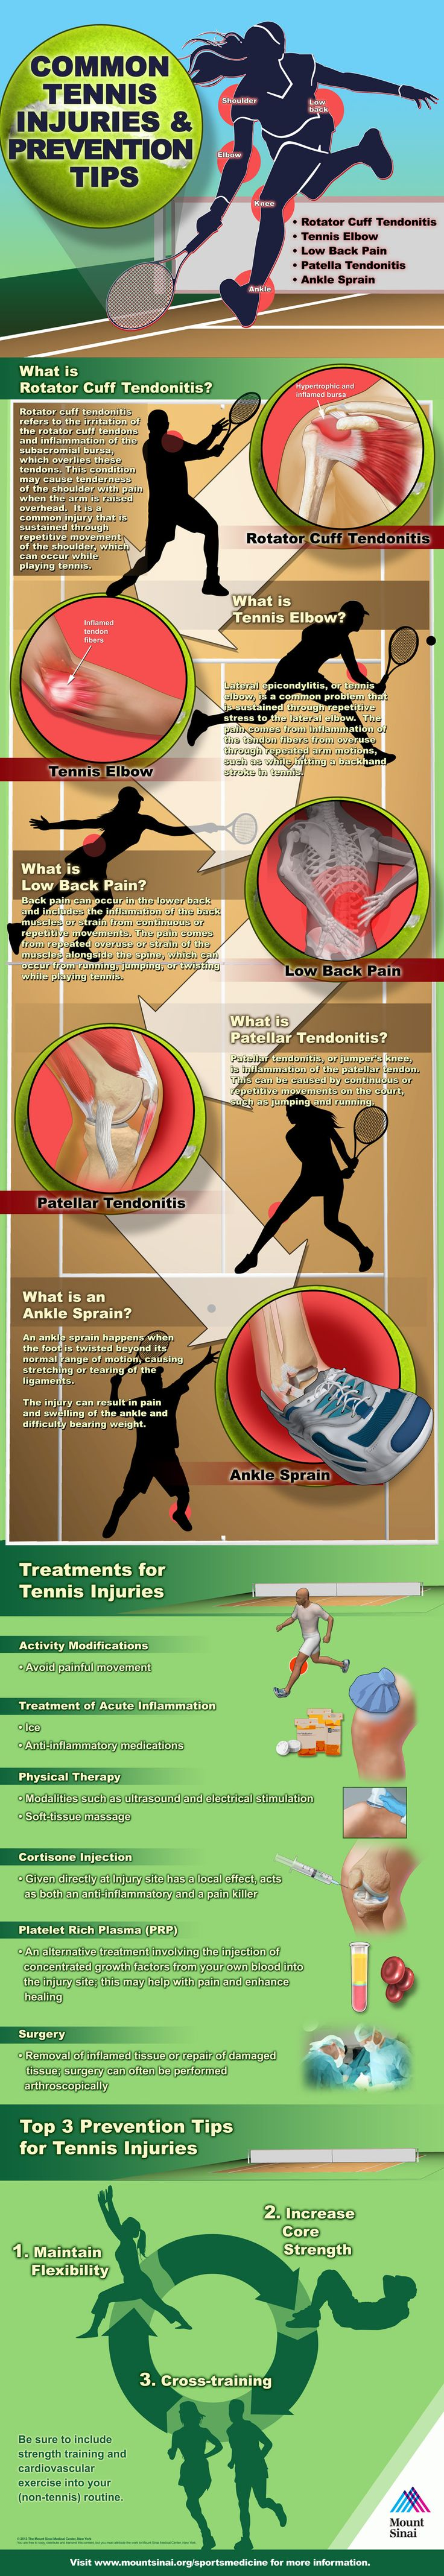 Approximately 30 million people in the U.S. play tennis, and it is estimated that more than half will suffer from a tennis-related injury. Learn about what causes the most common tennis injuries, available treatments, and how to stay safe on the court.